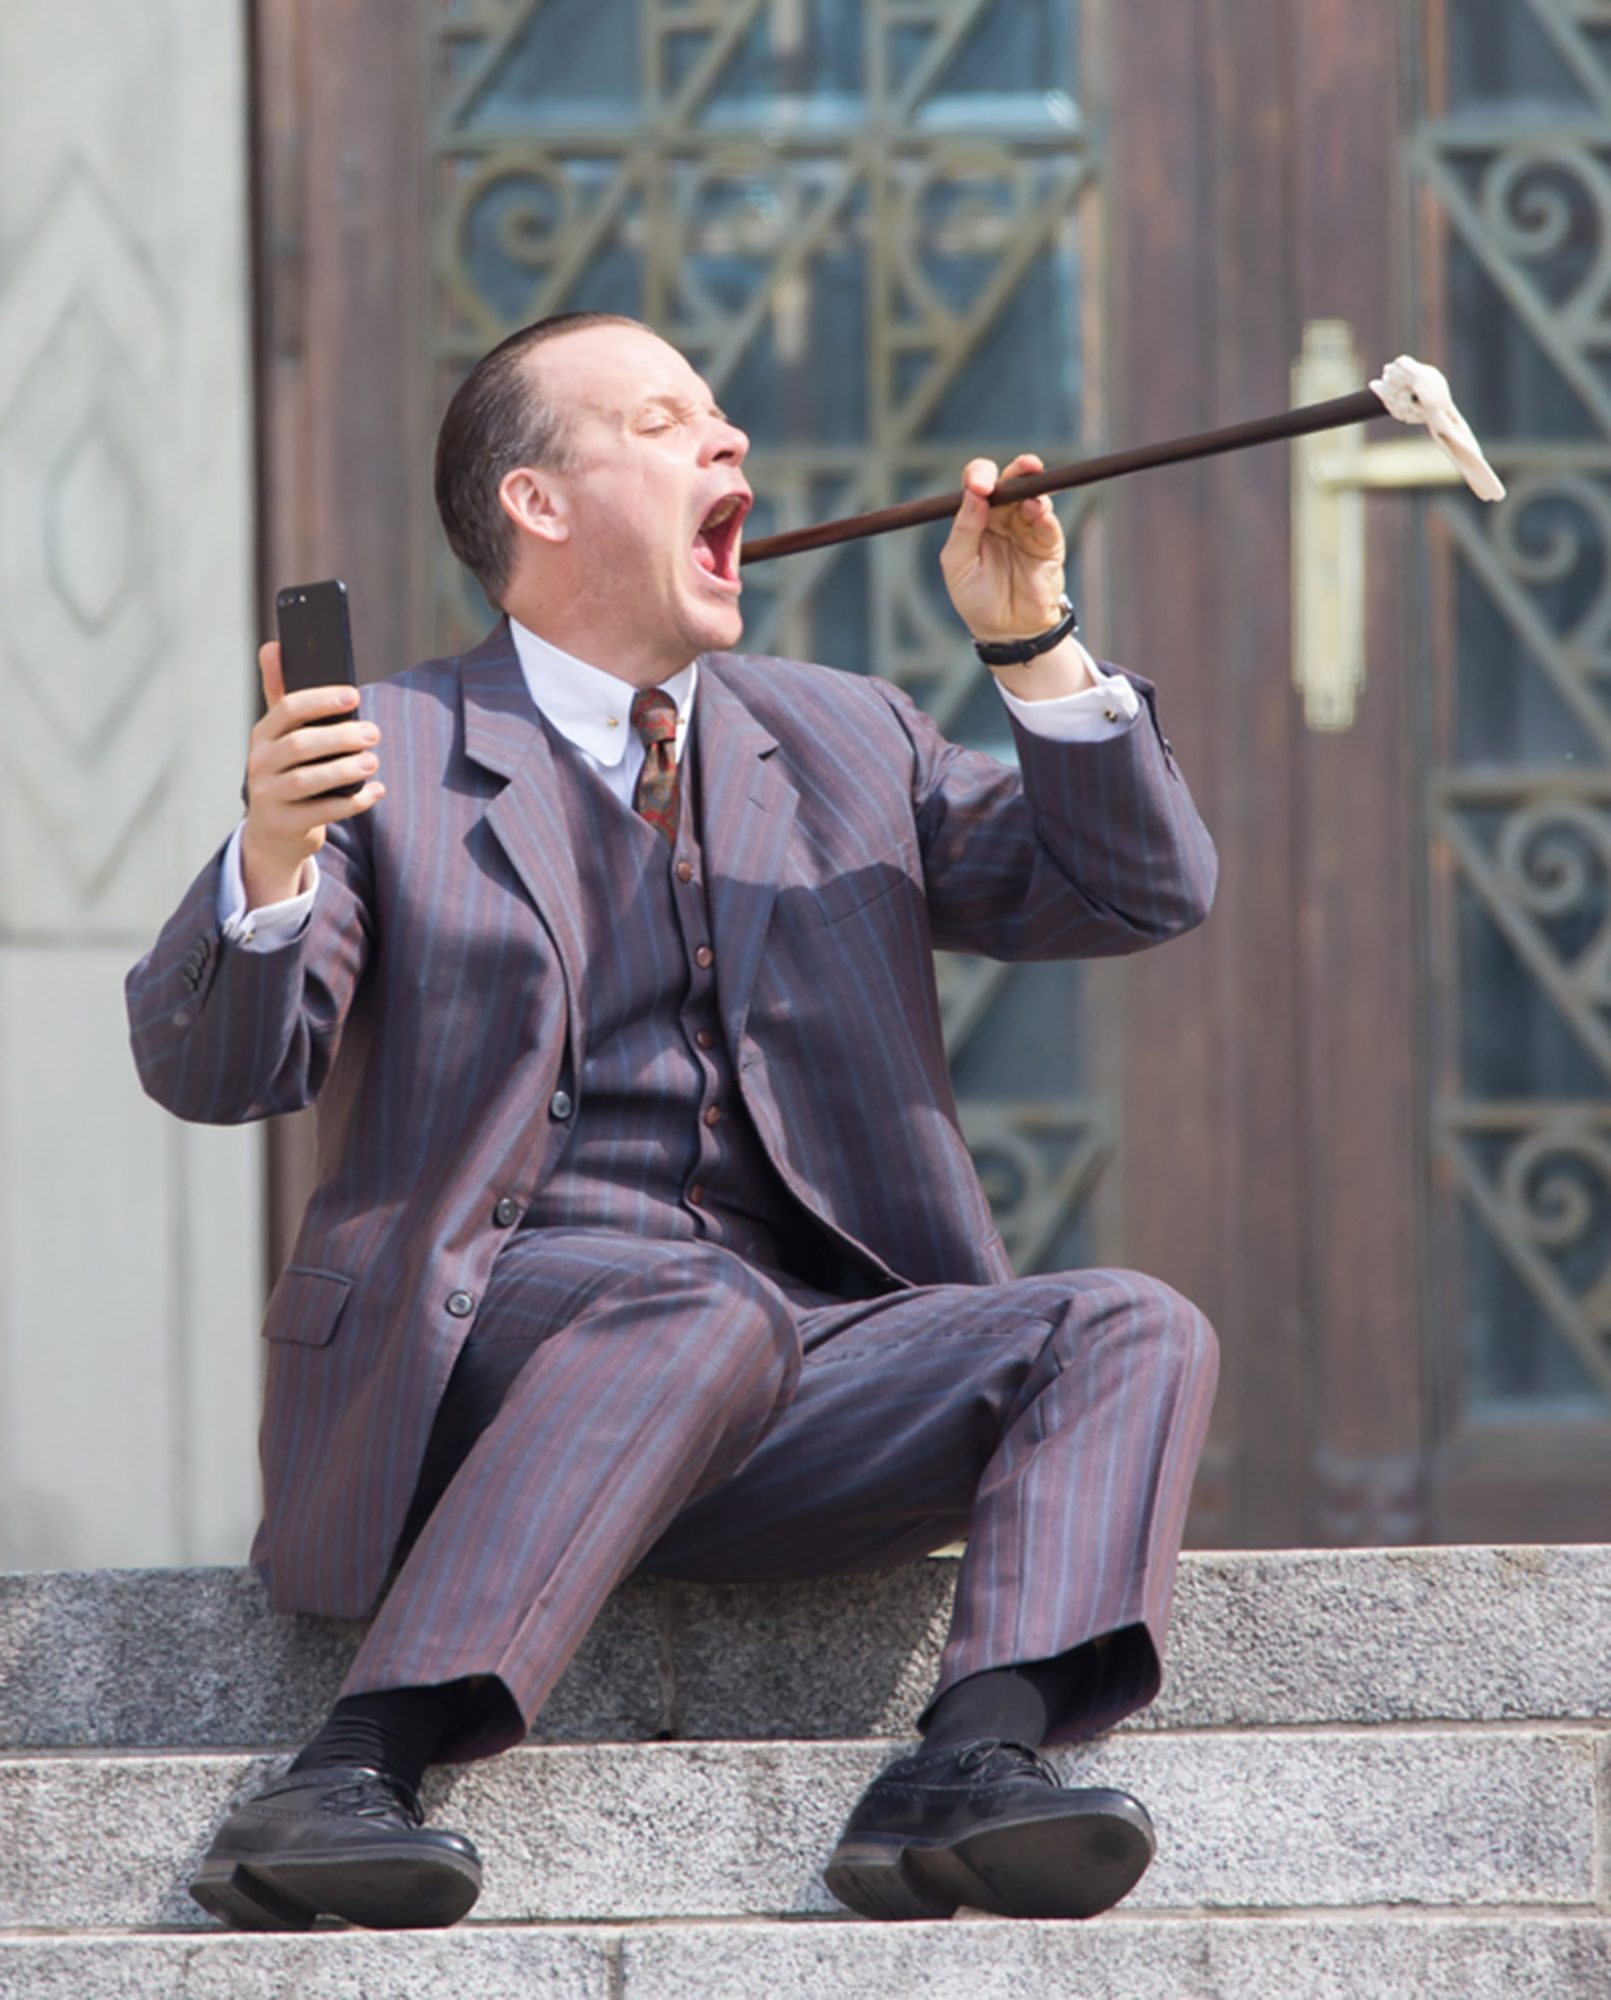 EXCLUSIVE: Peter Sarsgaard fools around with a cane on set